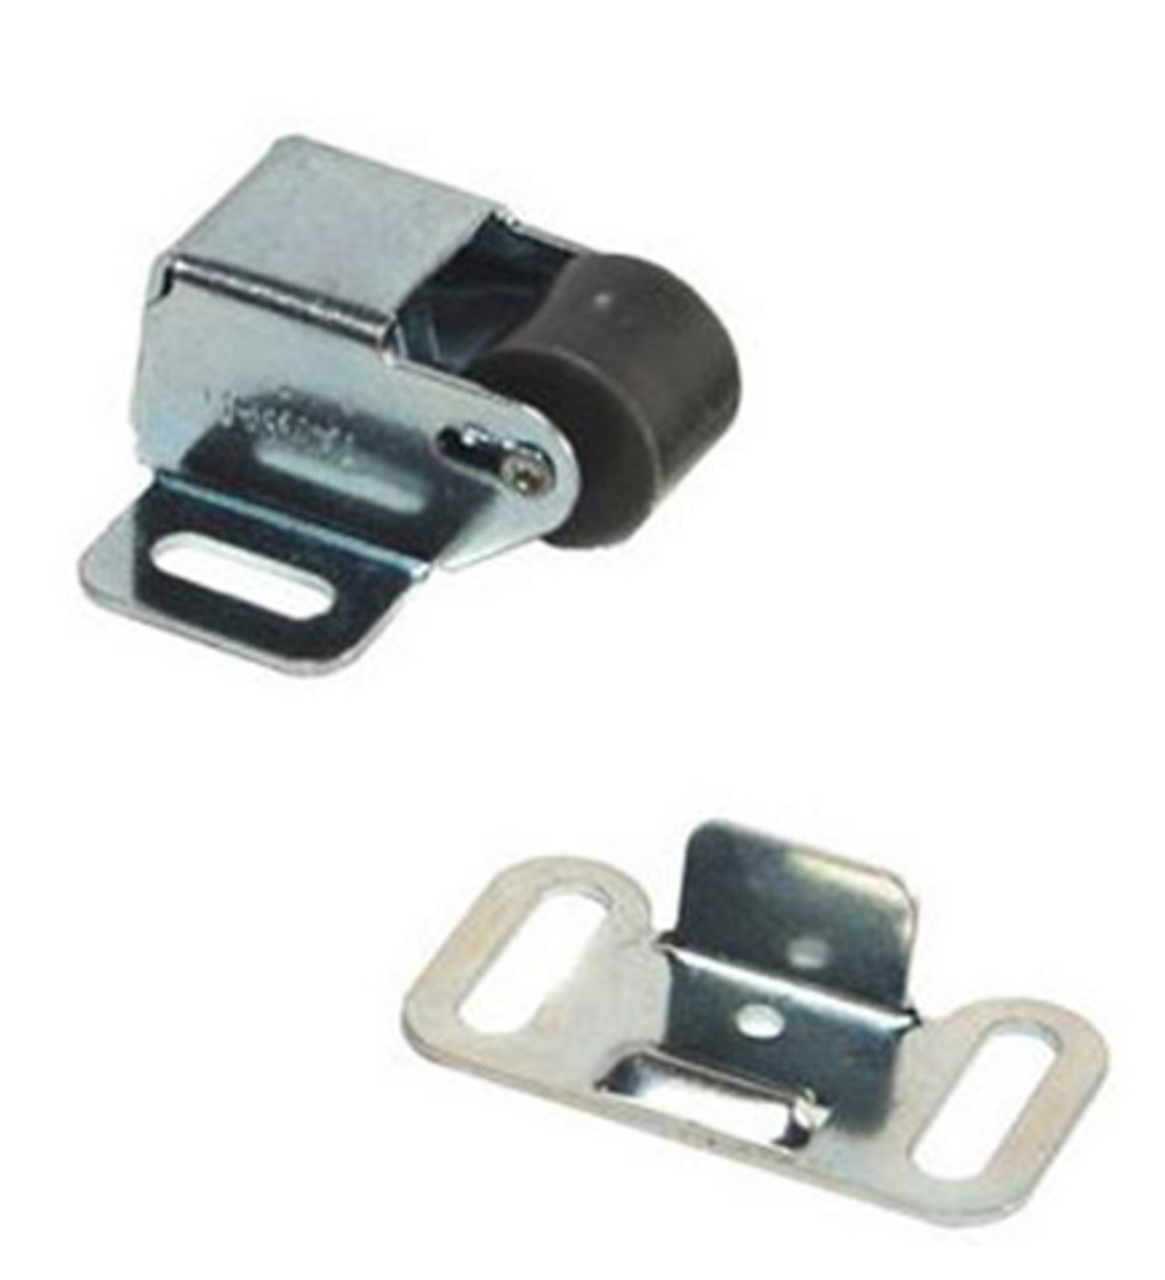 ROLLER CATCH (20-1112) PRODUCT PICTURED W/O HARDWARE